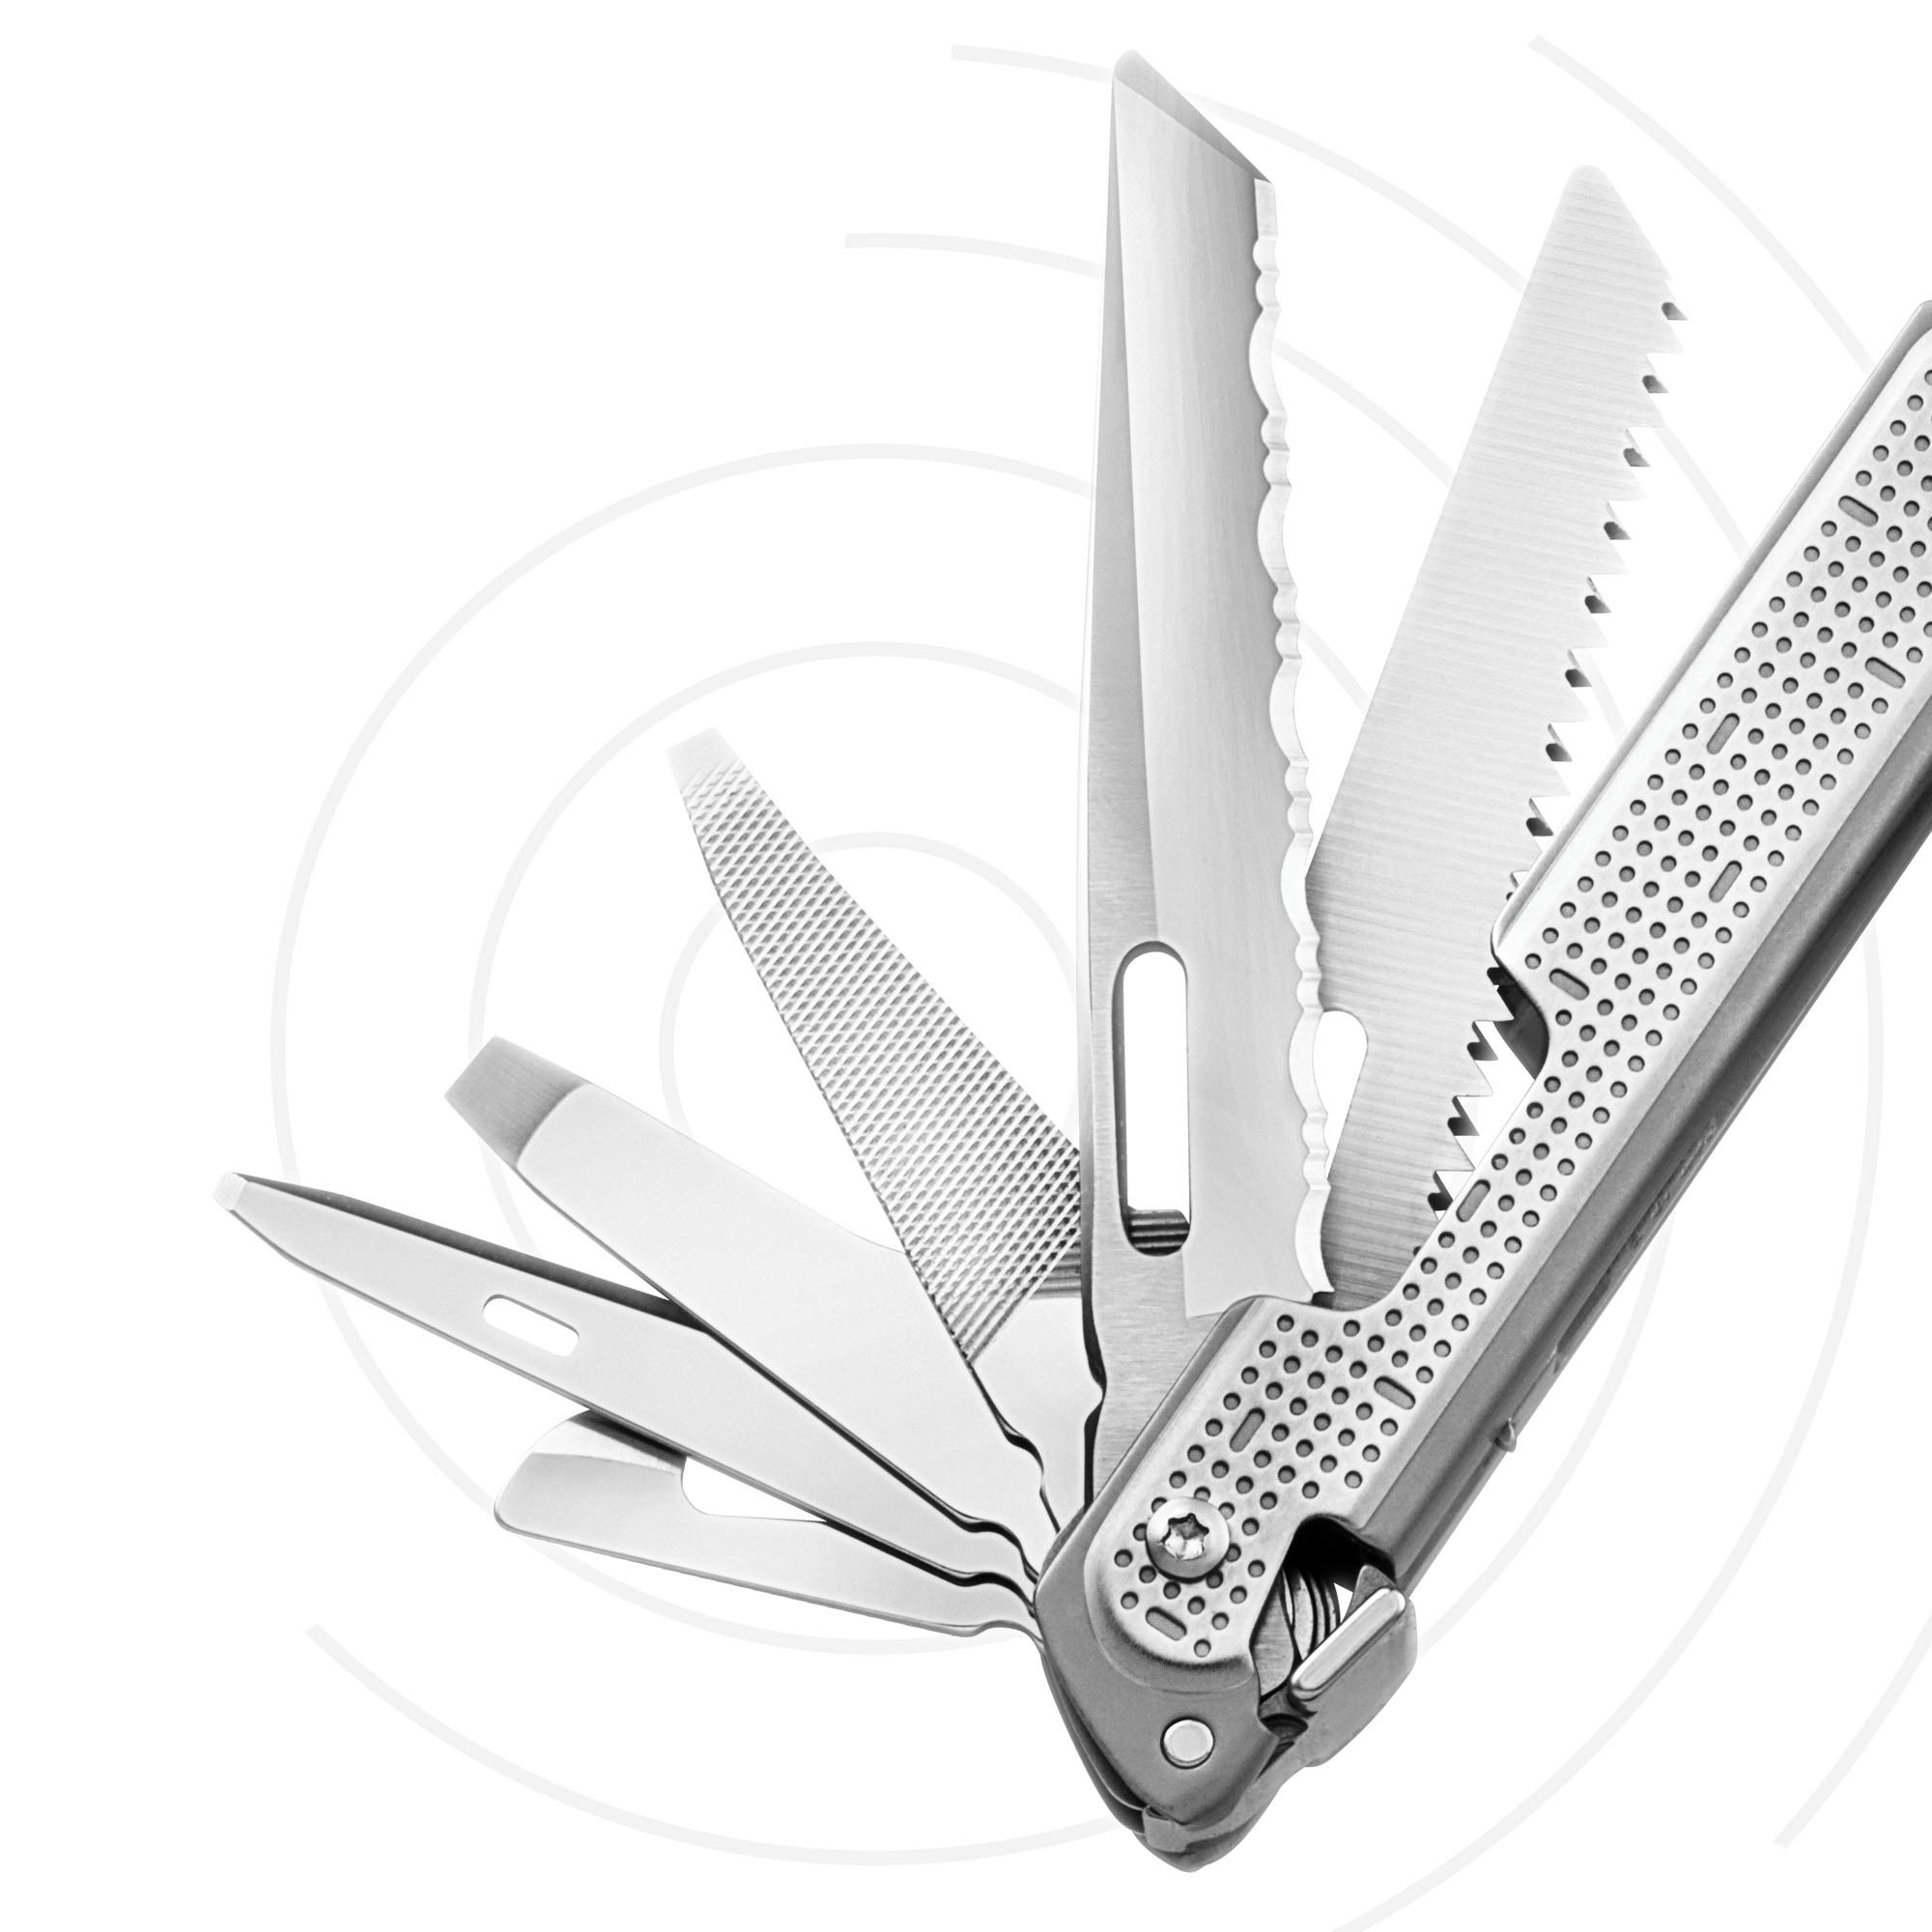 LEATHERMAN - FREE P4 Multitool with Magnetic Locking, One Hand Accessible Tools and Premium Nylon Sheath by LEATHERMAN (Image #9)